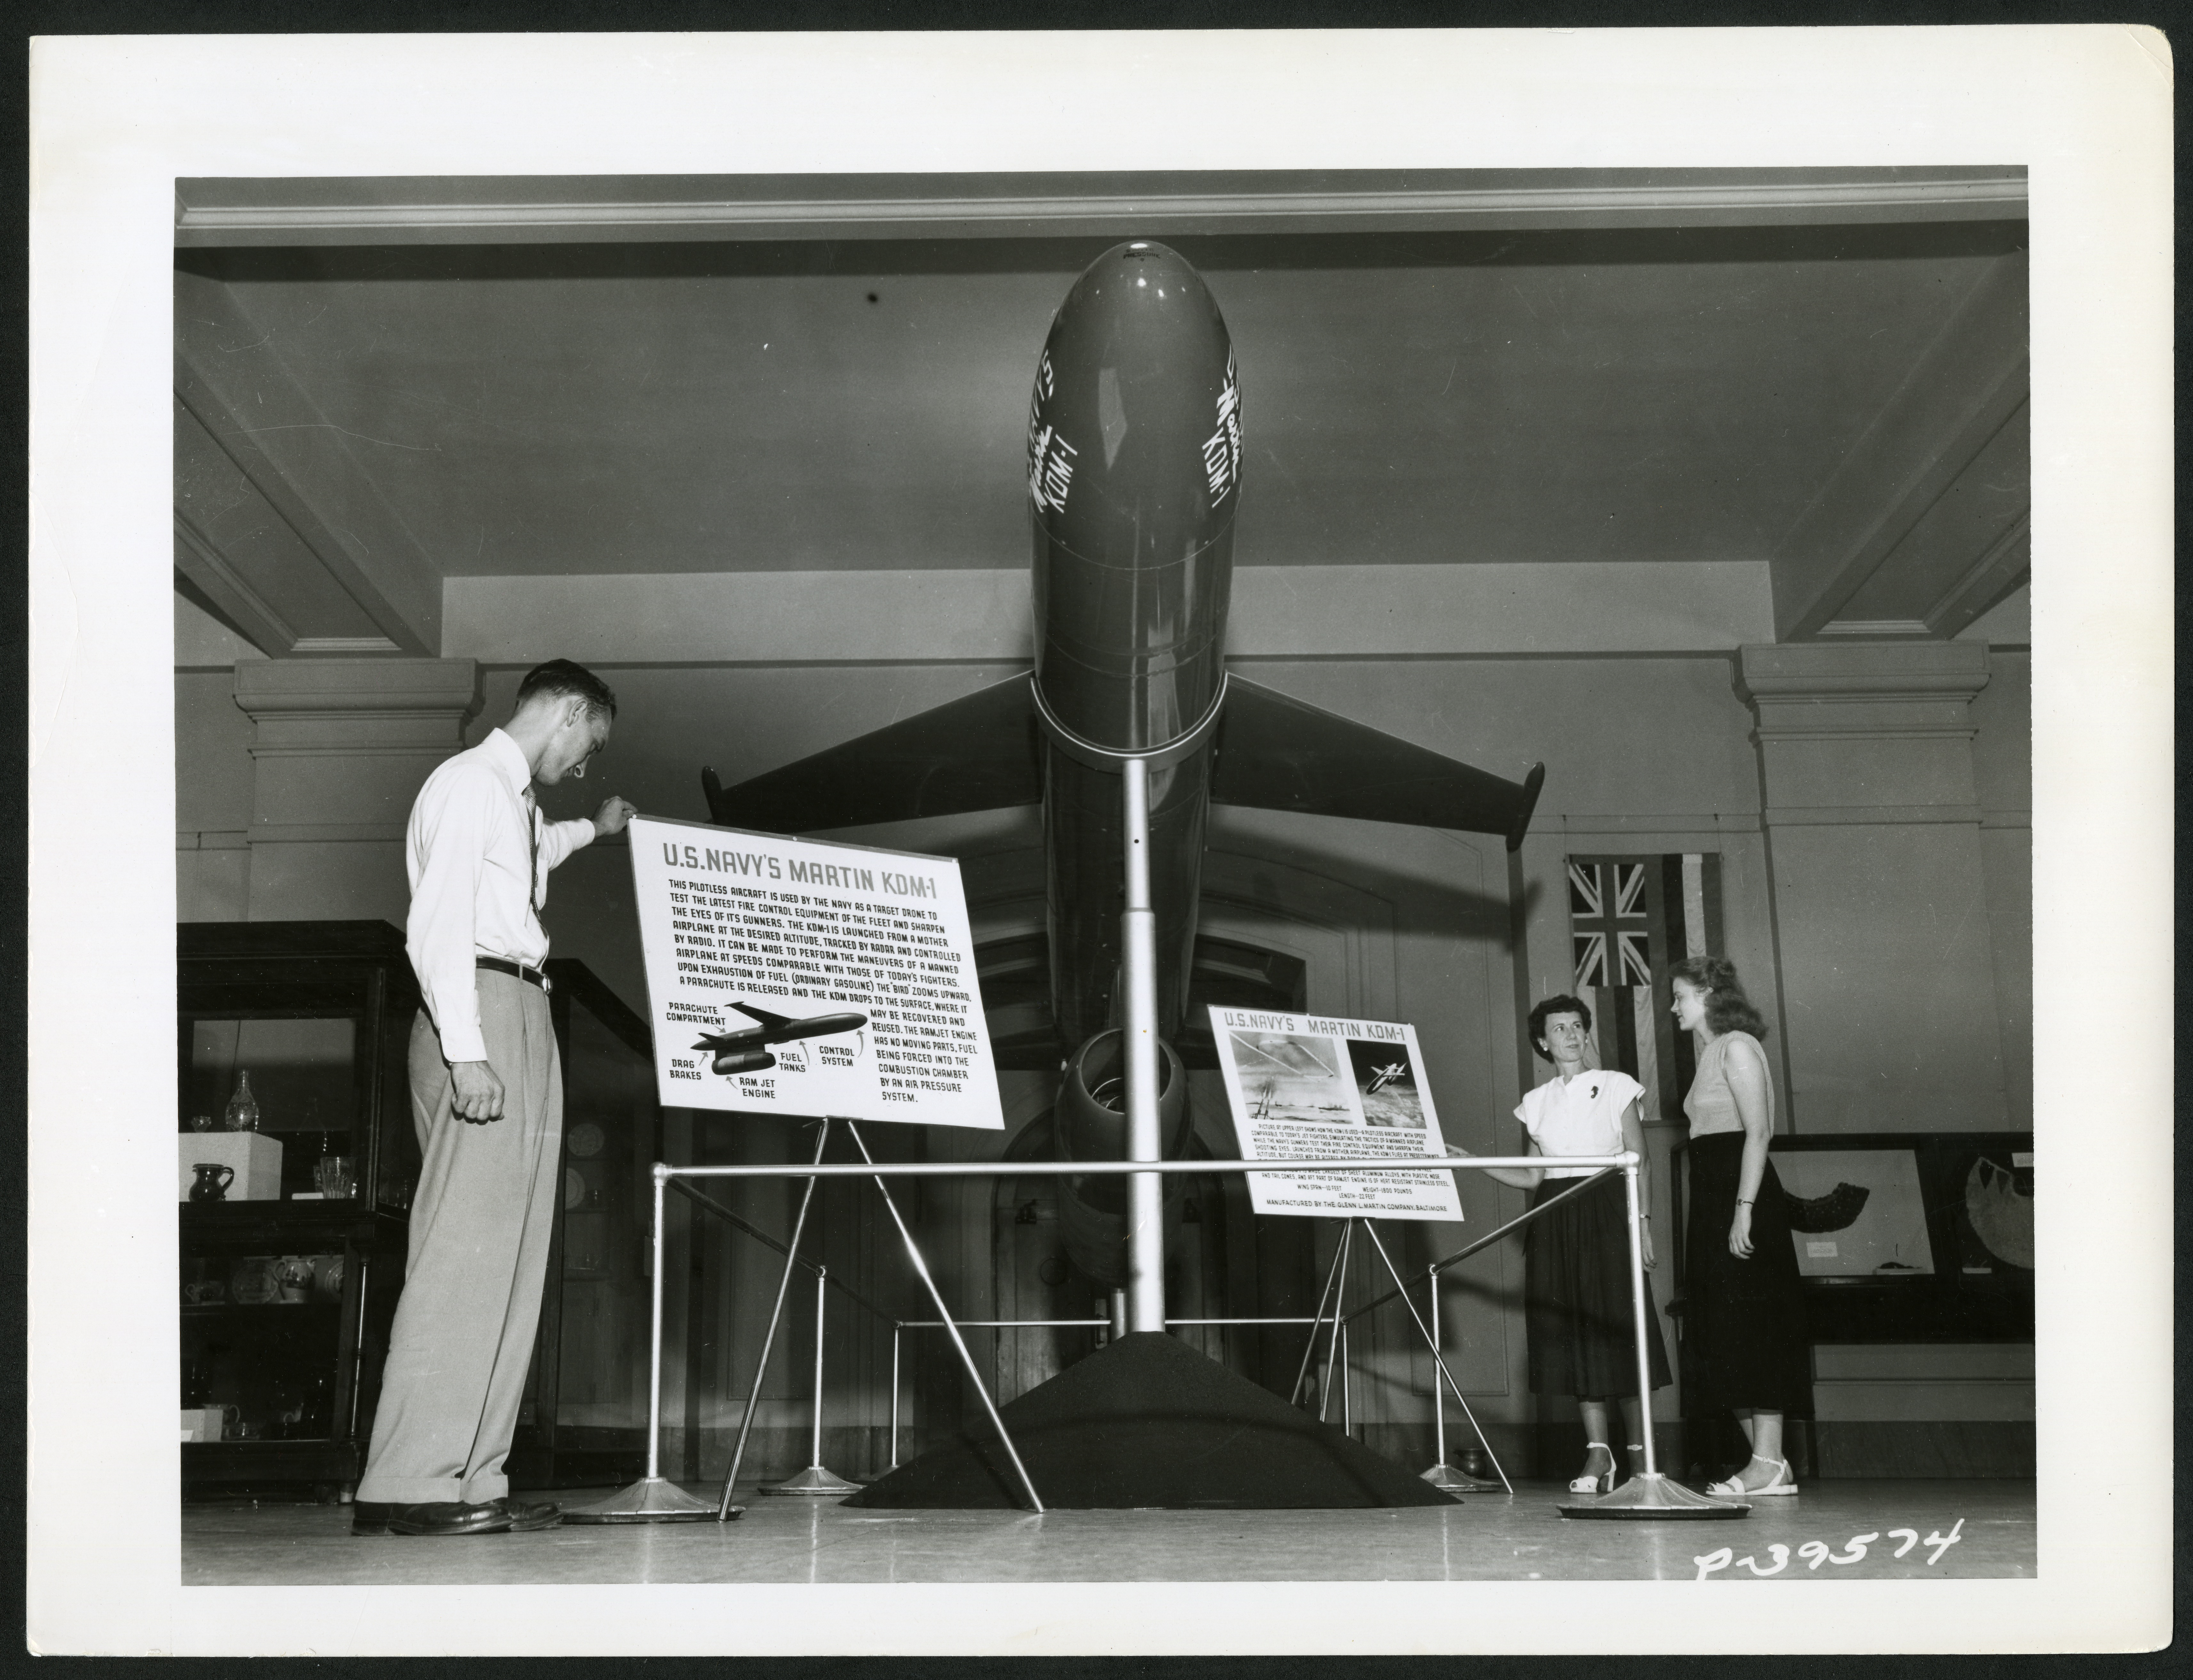 Exhibit displays the U.S. Navy's Martin KDM-1 target drone, with a man standing to the left, and Hel